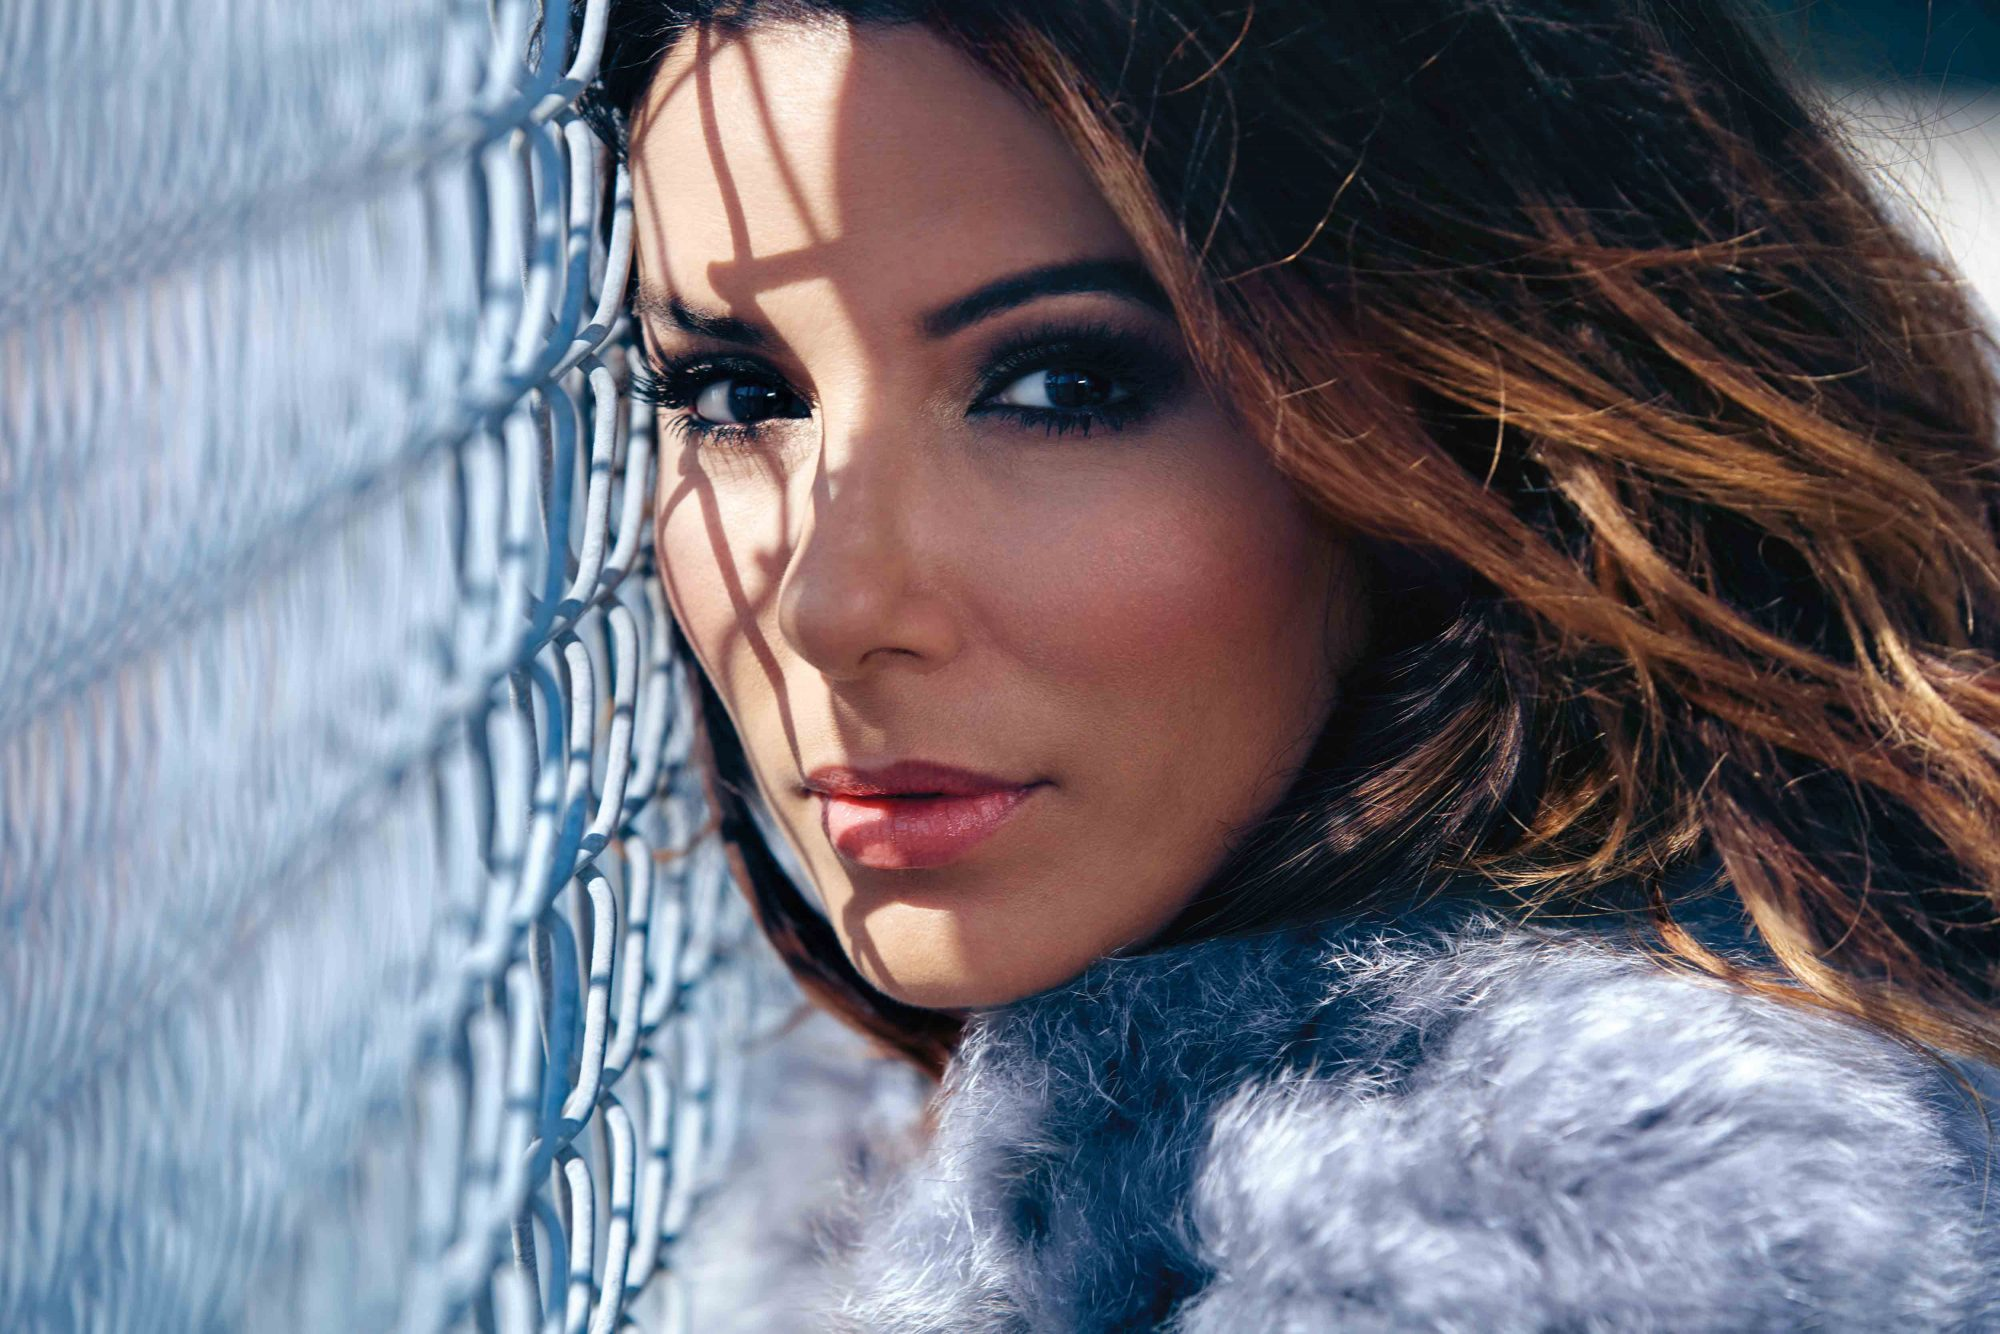 eva-longoria-june-chain-fence-closeup